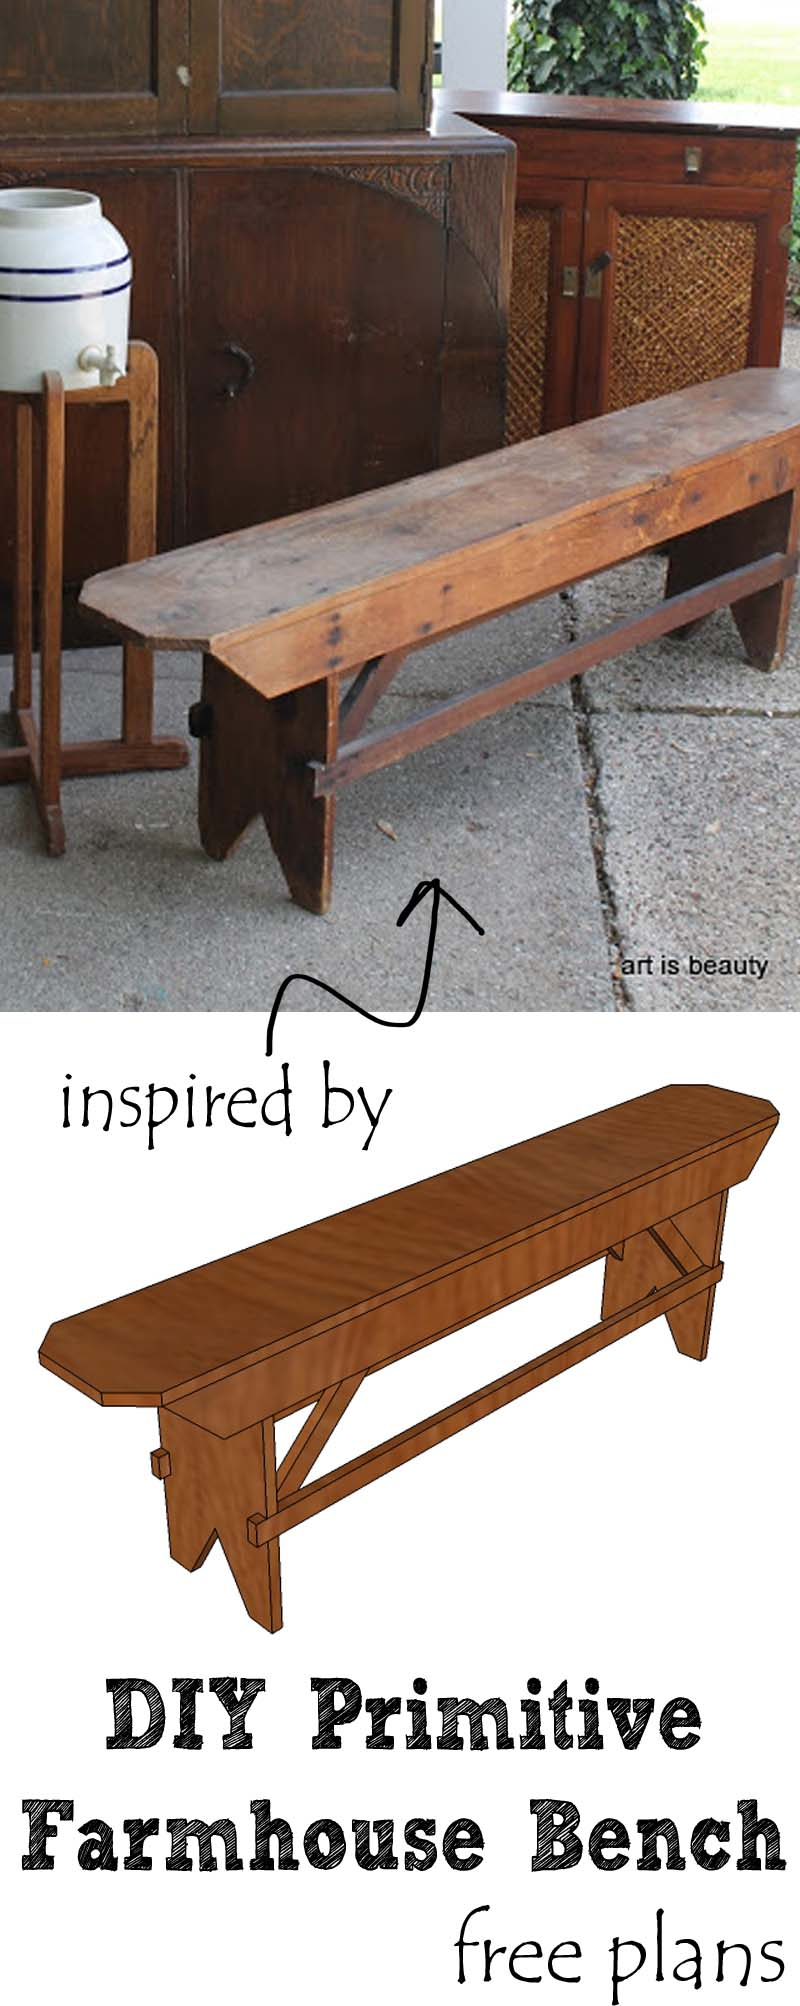 Farmhouse bench woodworking plans woodshop plans - Build A Beautiful Diy Primitive Farmhouse Bench For Your Farmhouse Table Or Extra Seating Free For More Build Plans